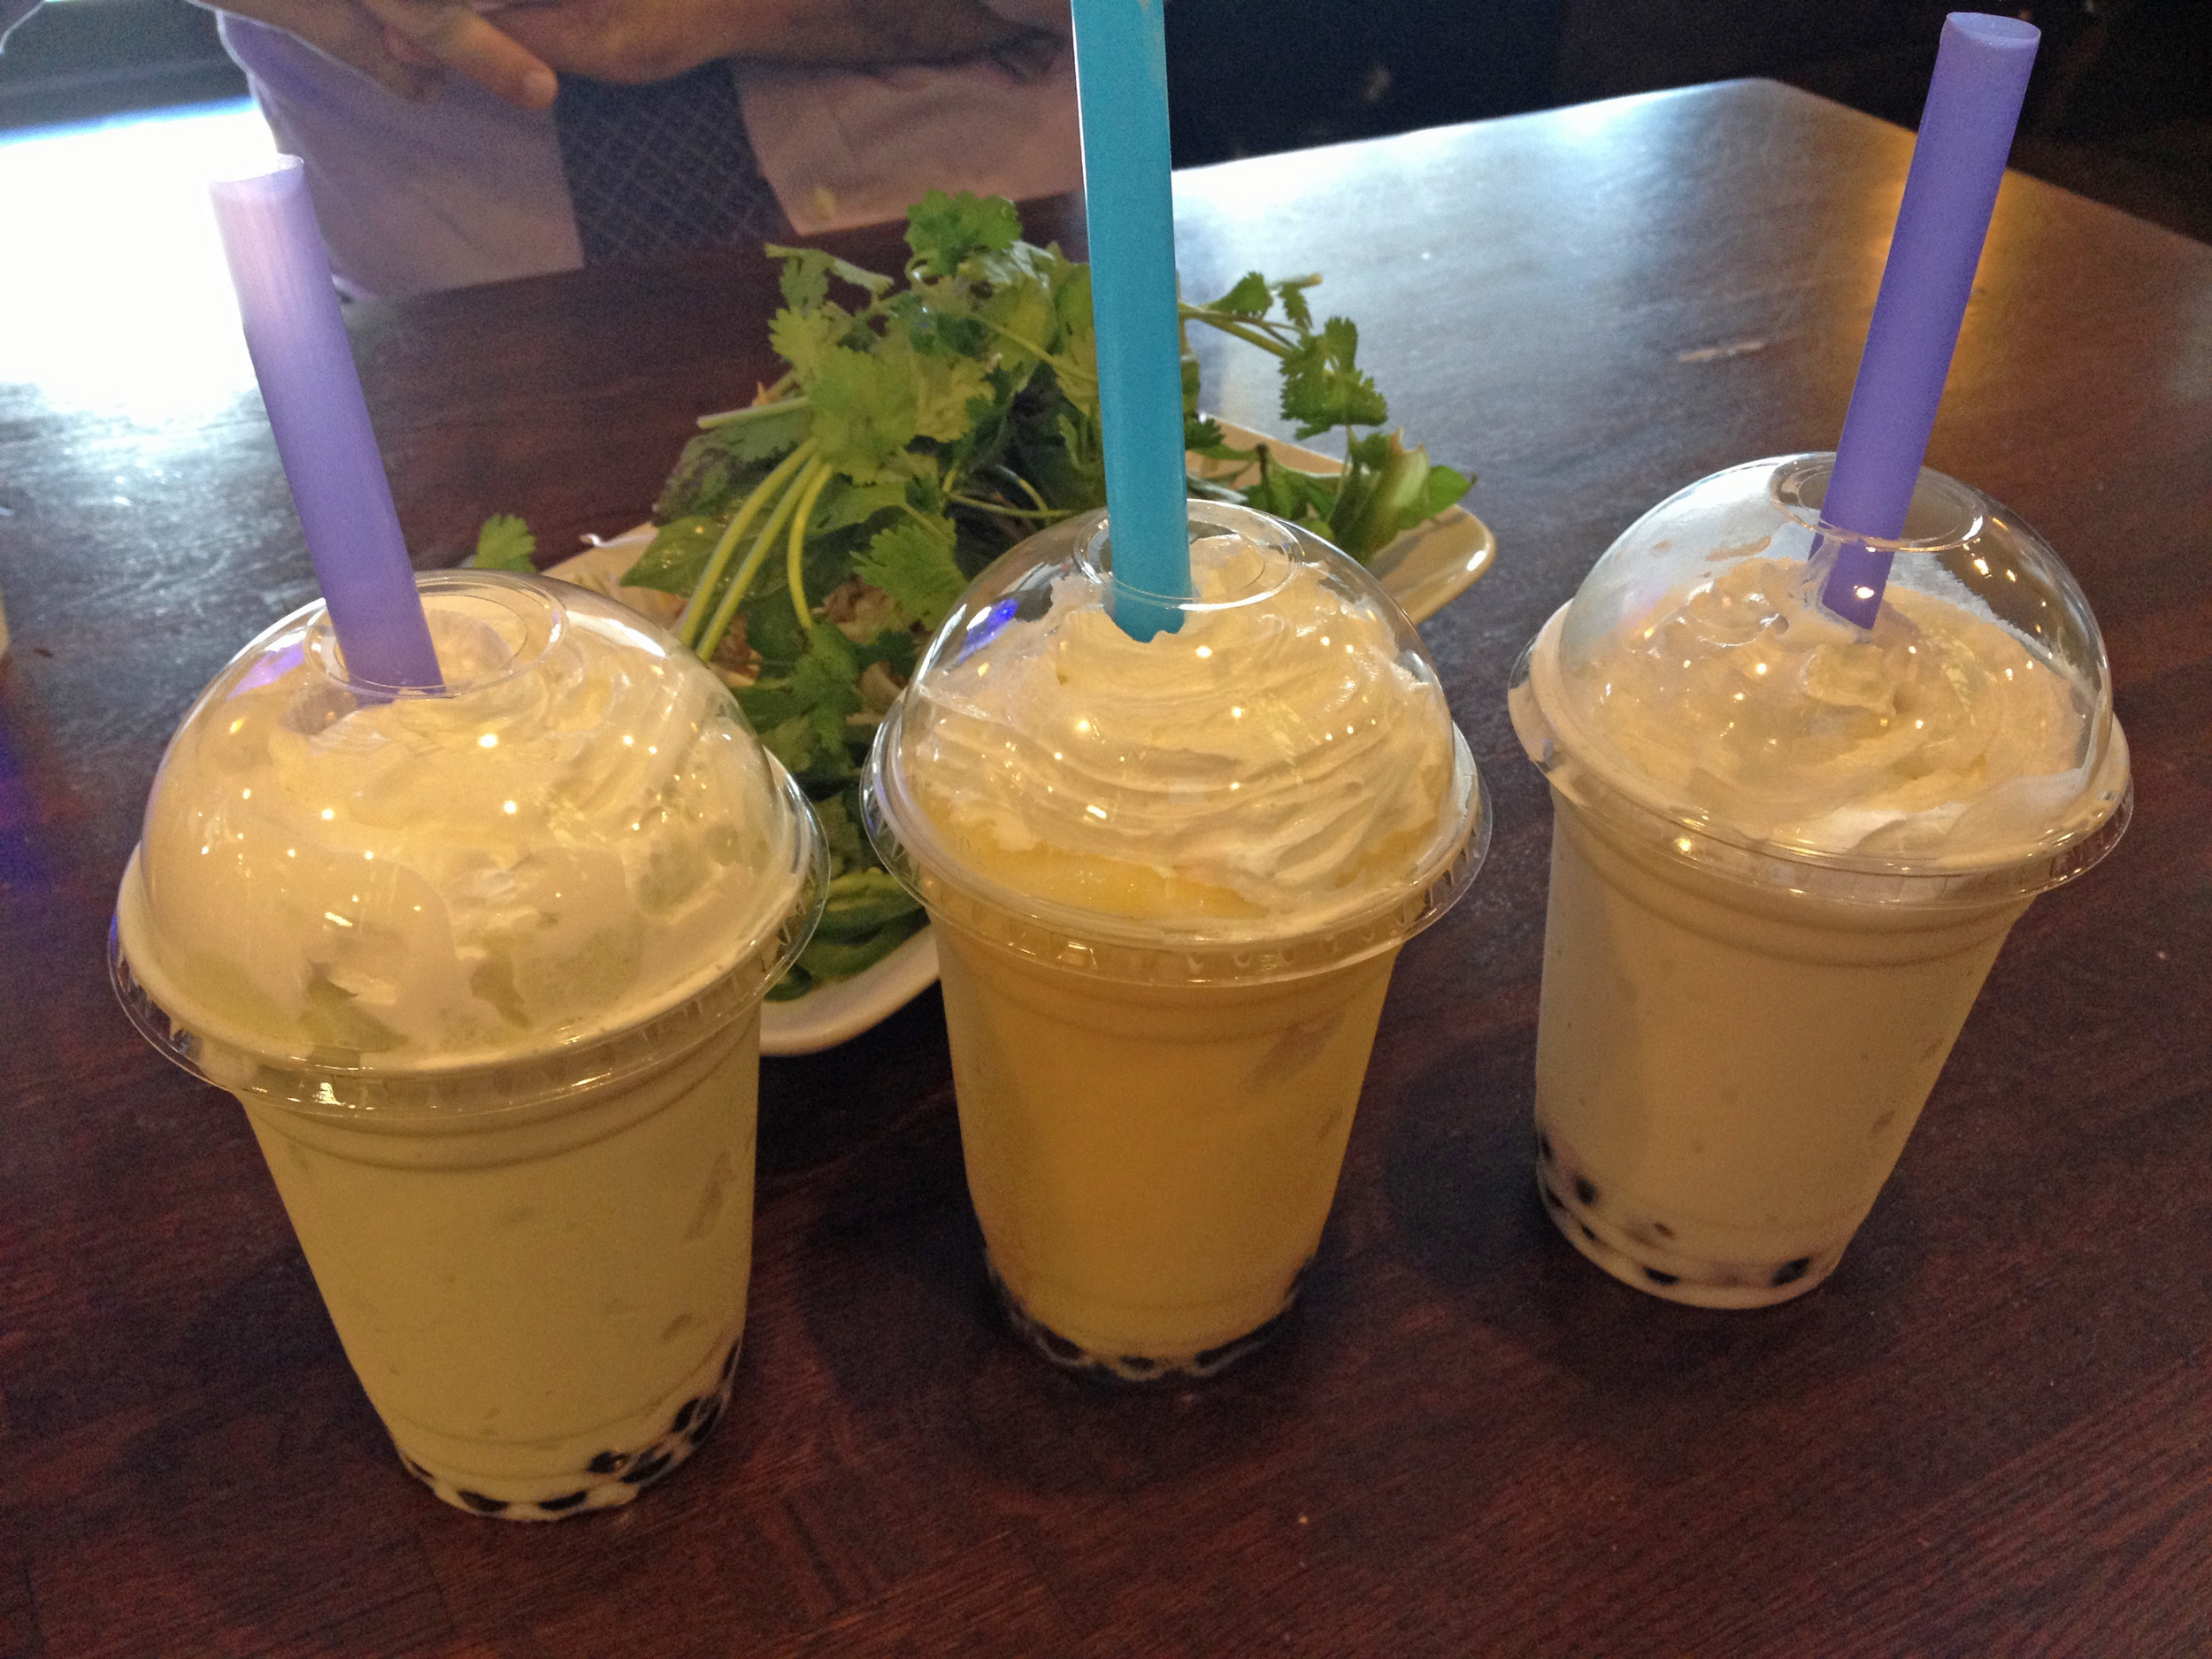 Bowl of Pho boba smoothies